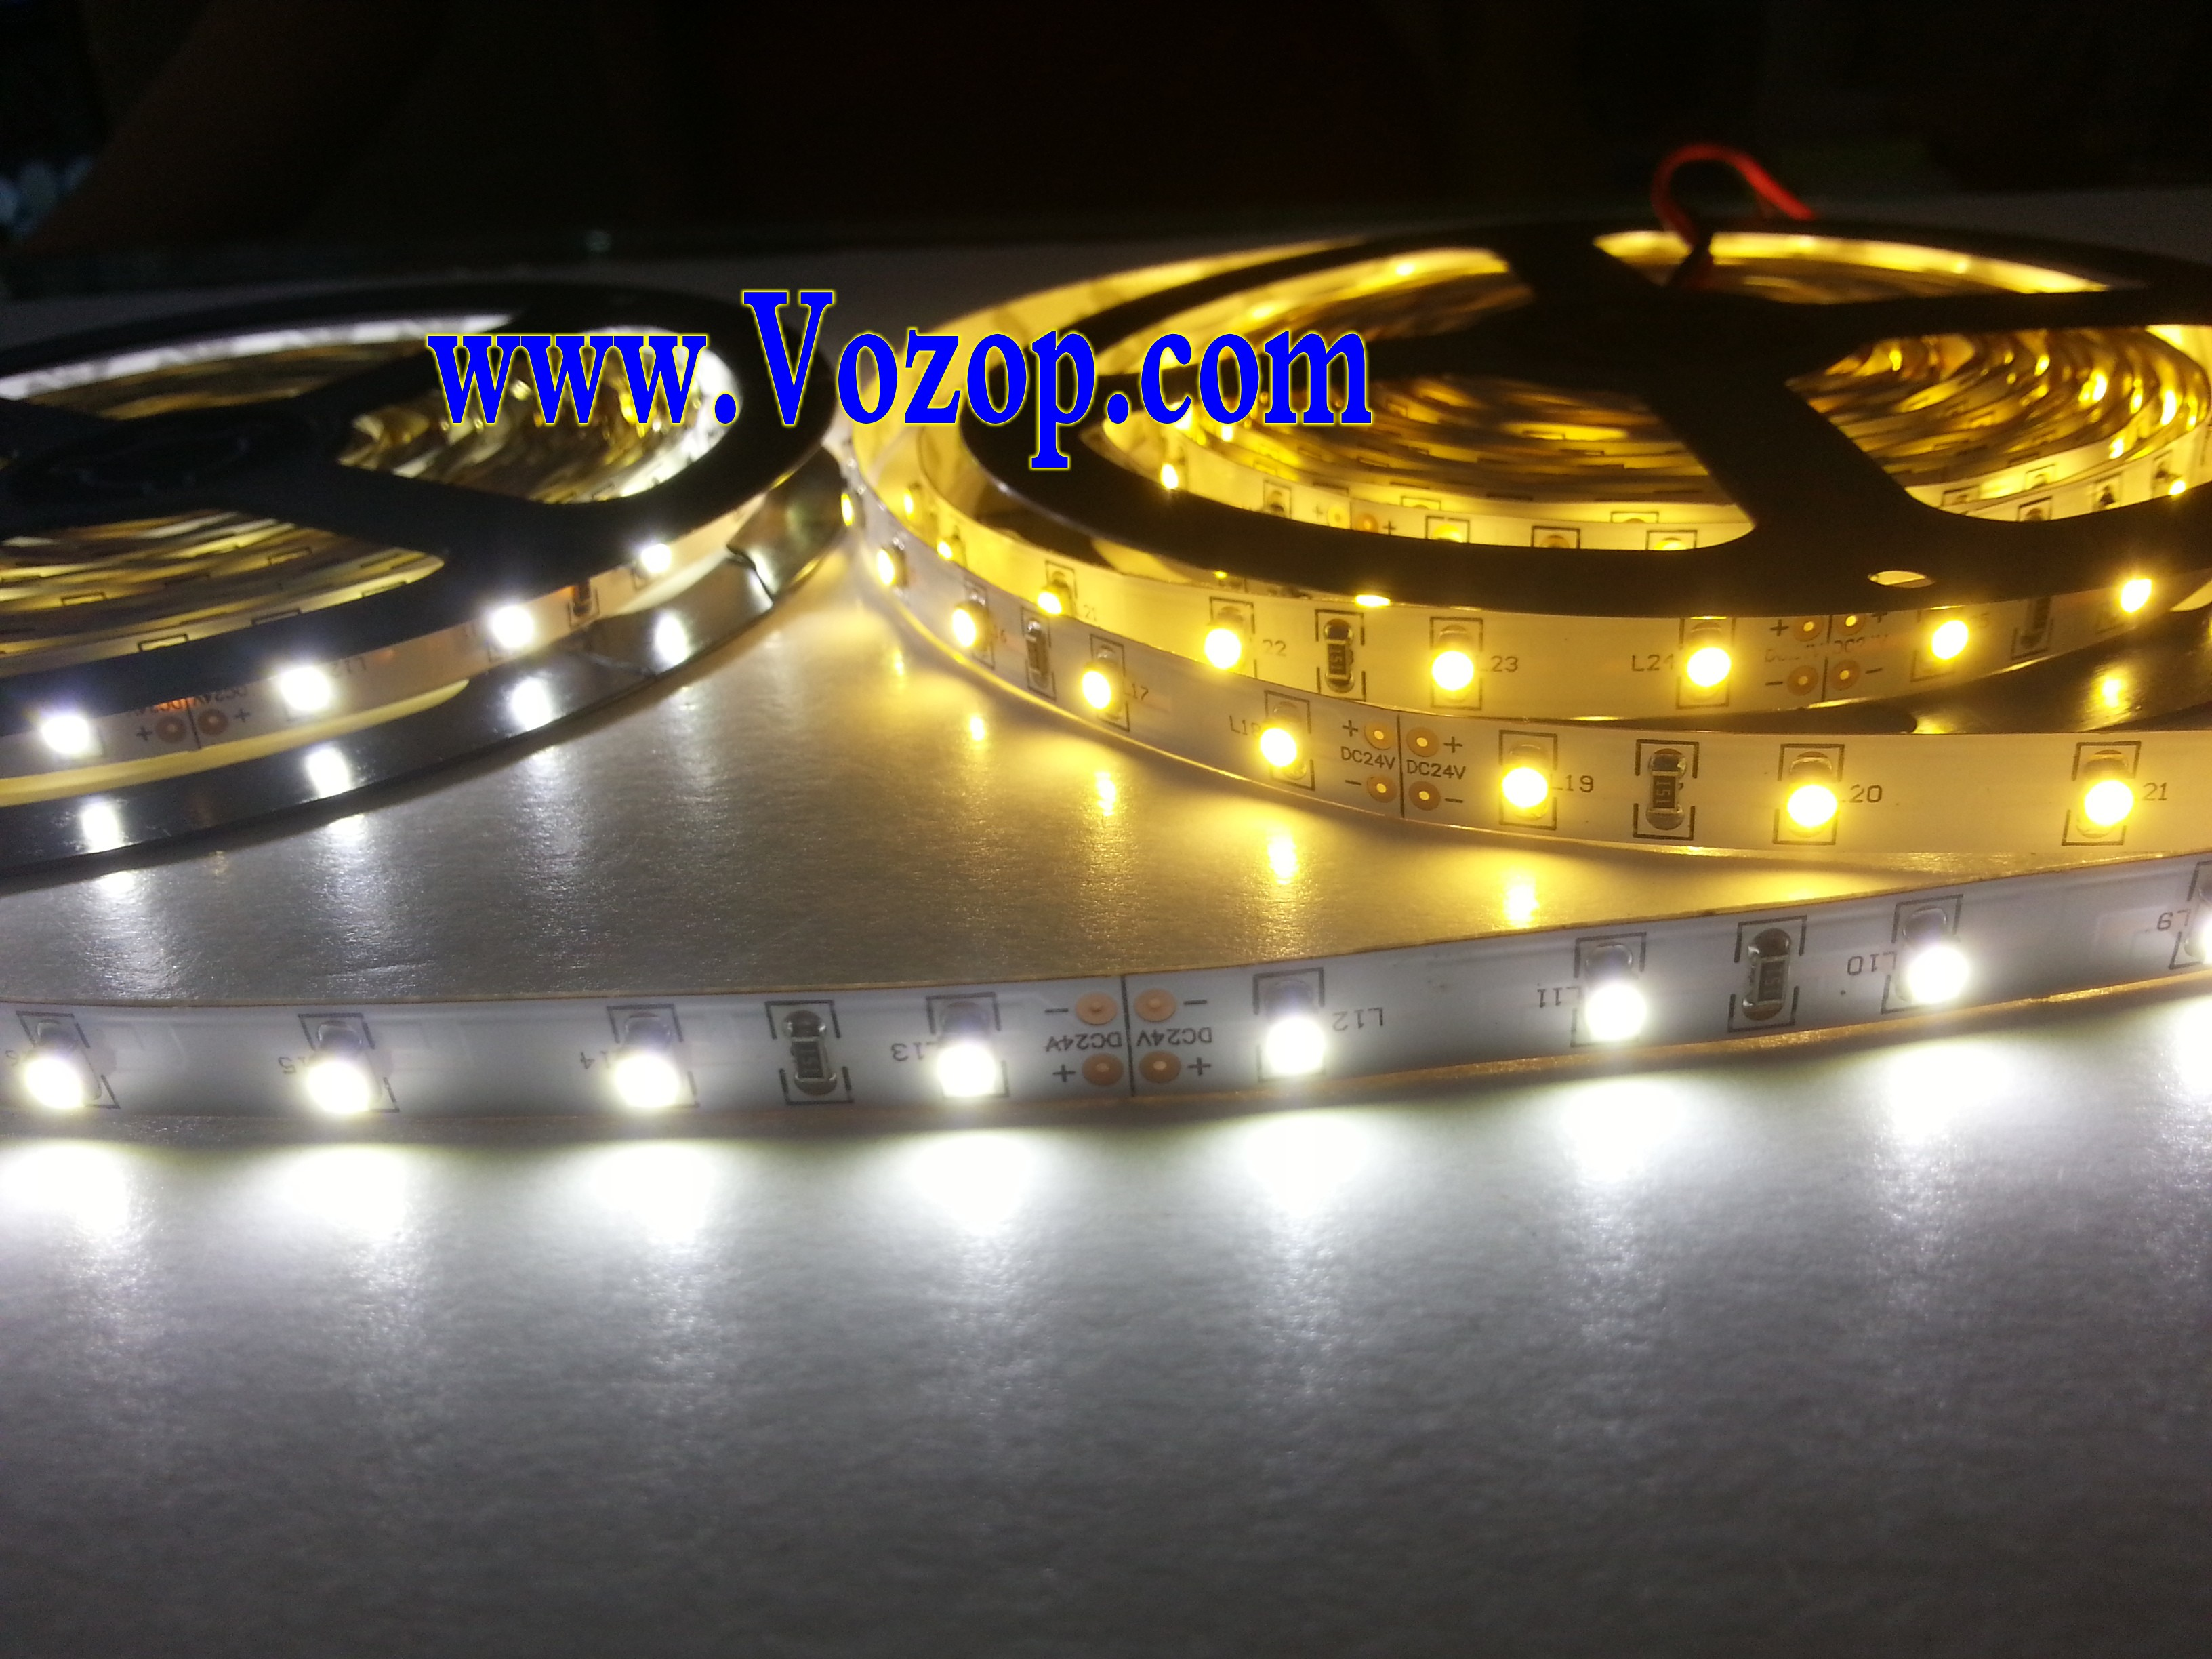 24V_3528_LED_Light_Strip_5M_300_LEDs_Lighting_Tape_light_wholesale